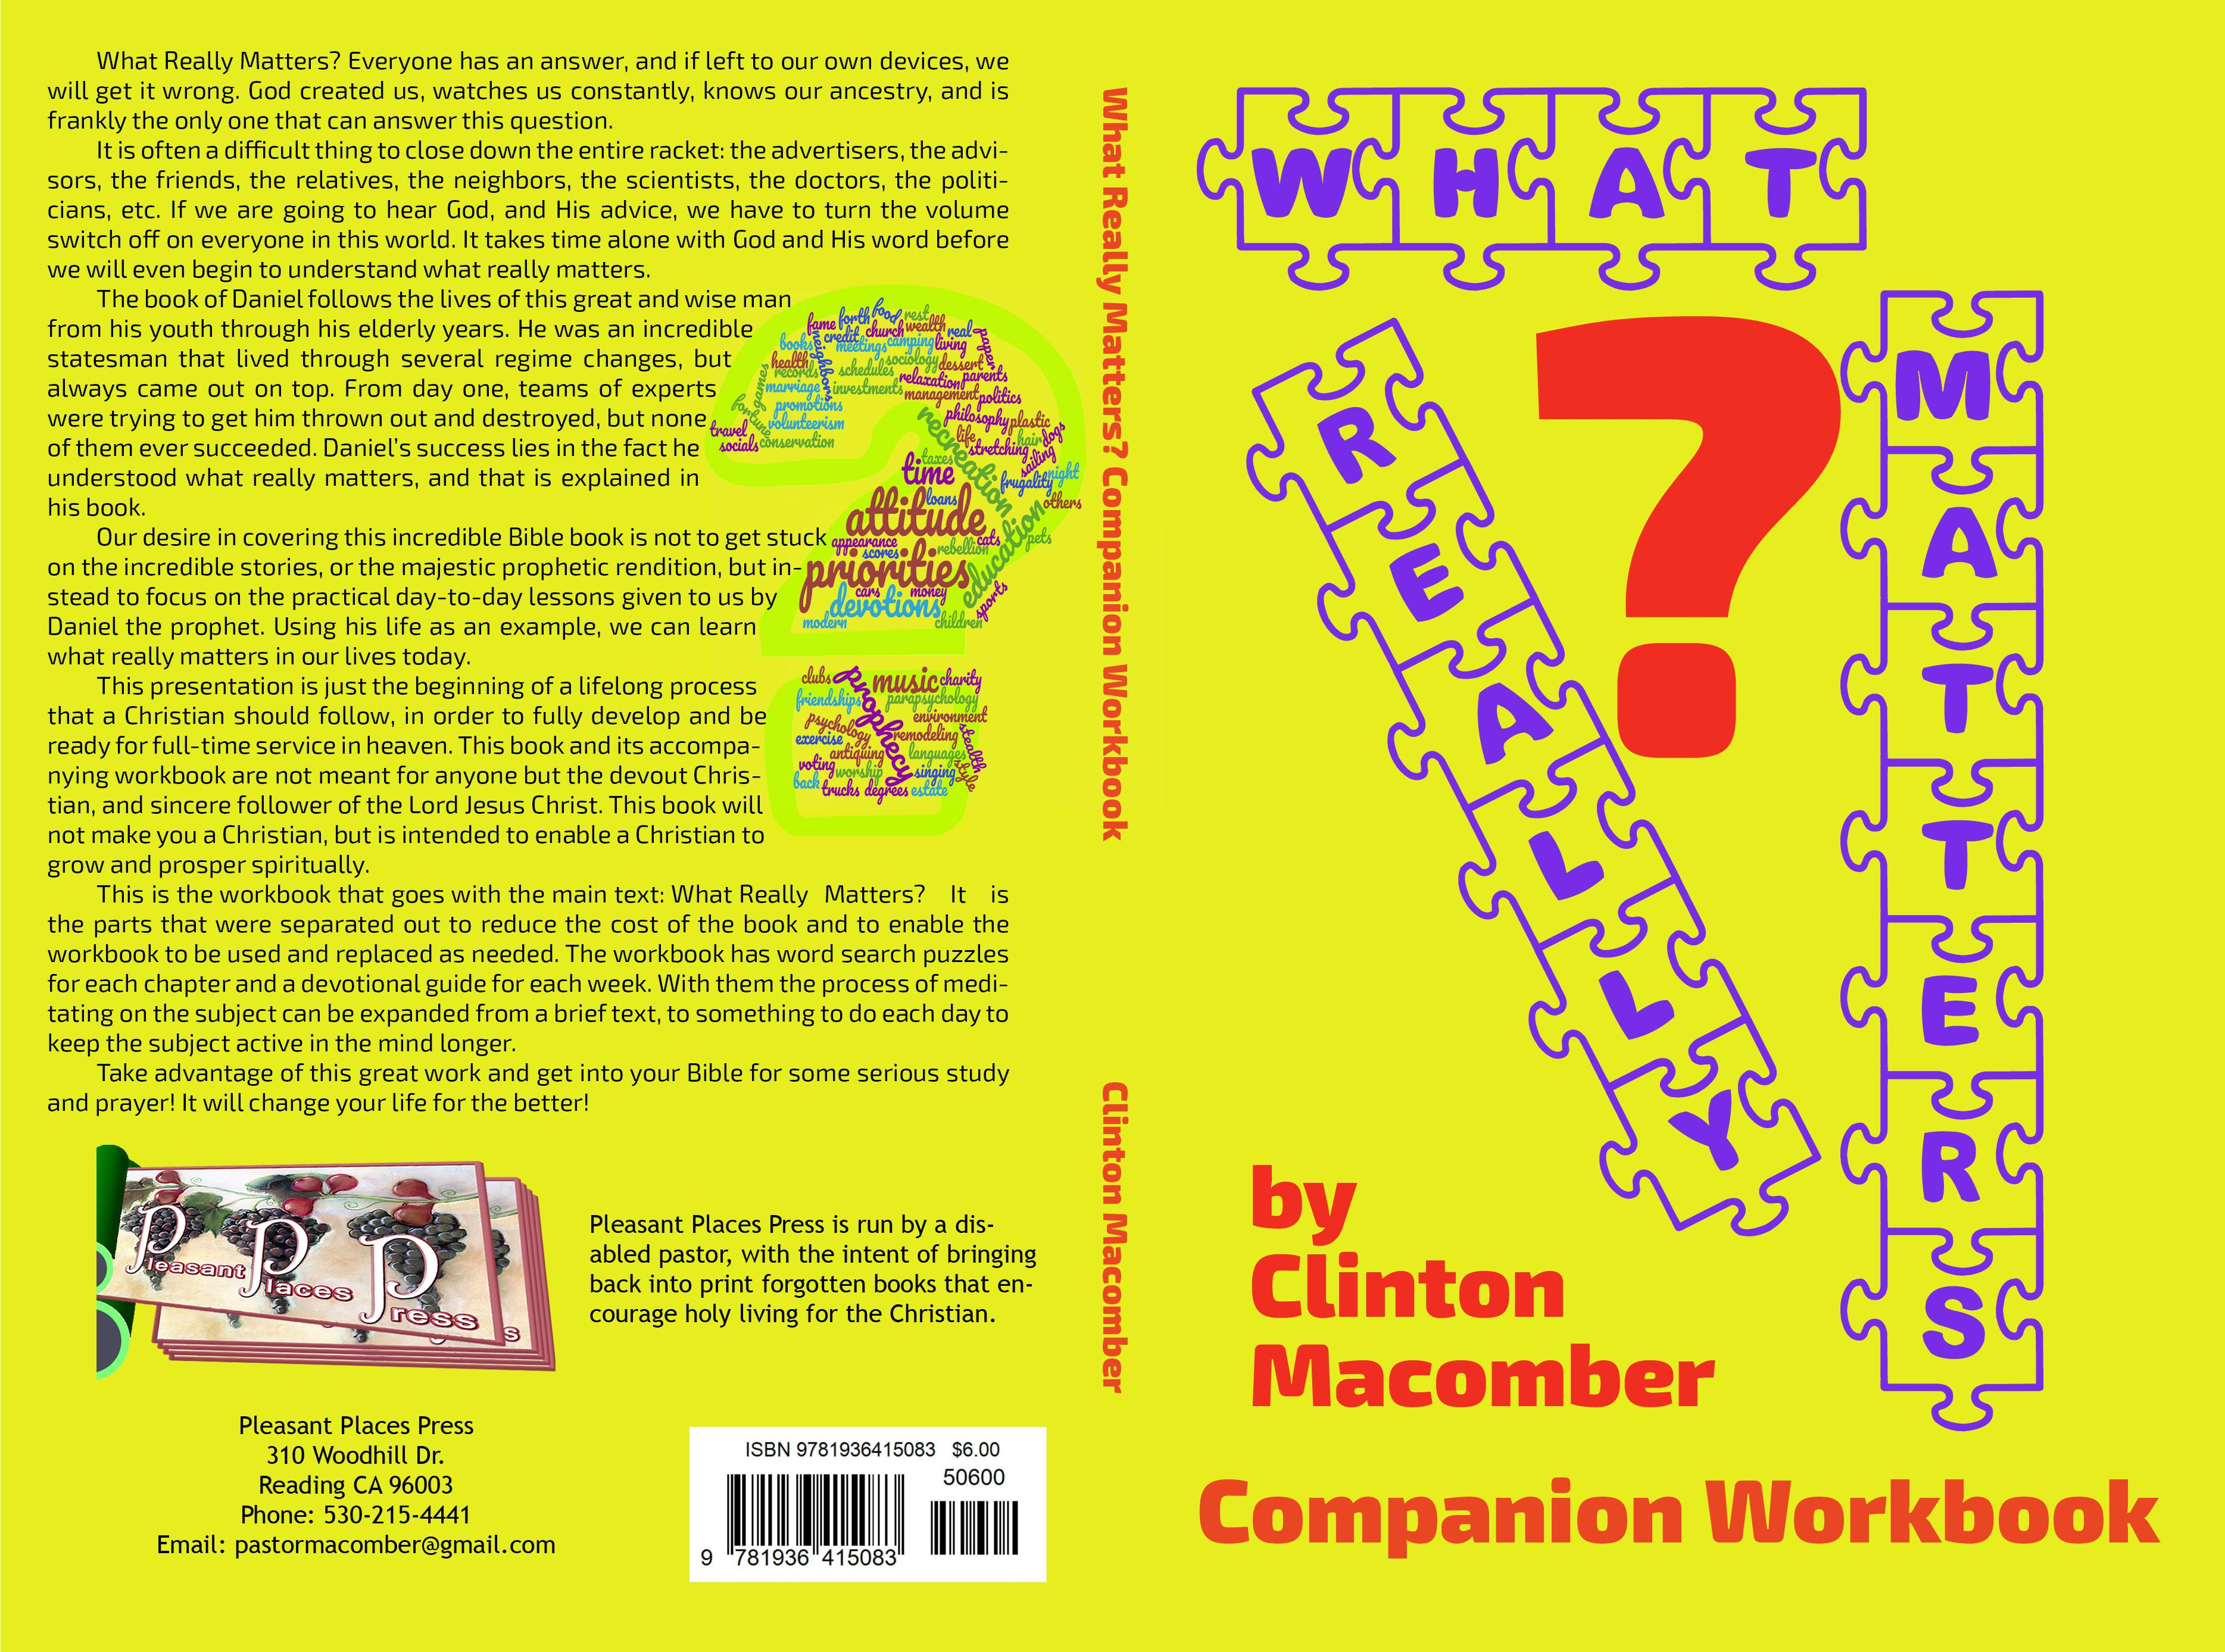 What Really Matters? Workbook cover image